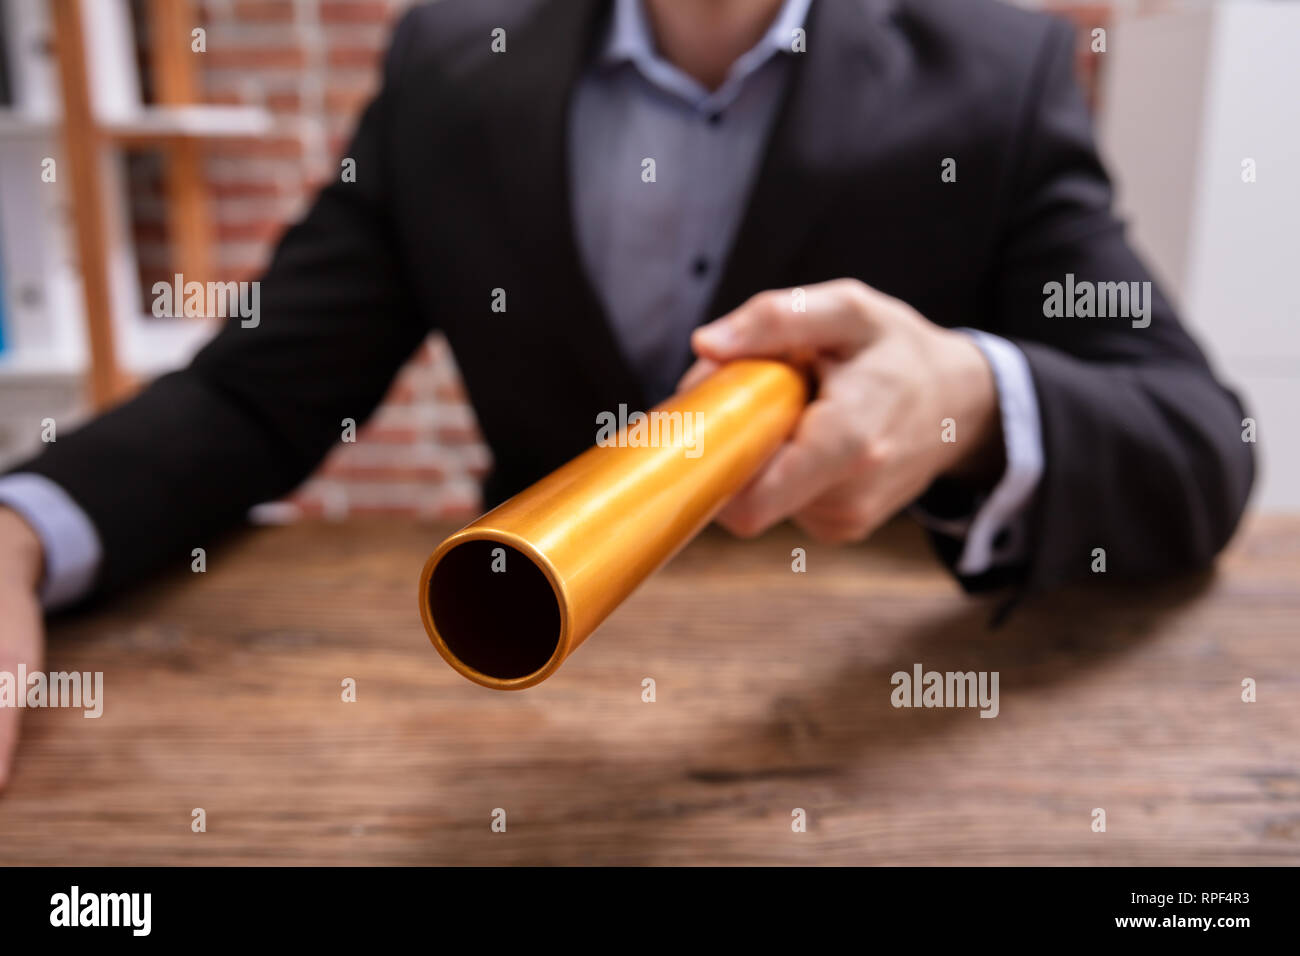 Mid-section Of A Person's Hand Holding Golden Relay Baton Over Wooden Desk - Stock Image